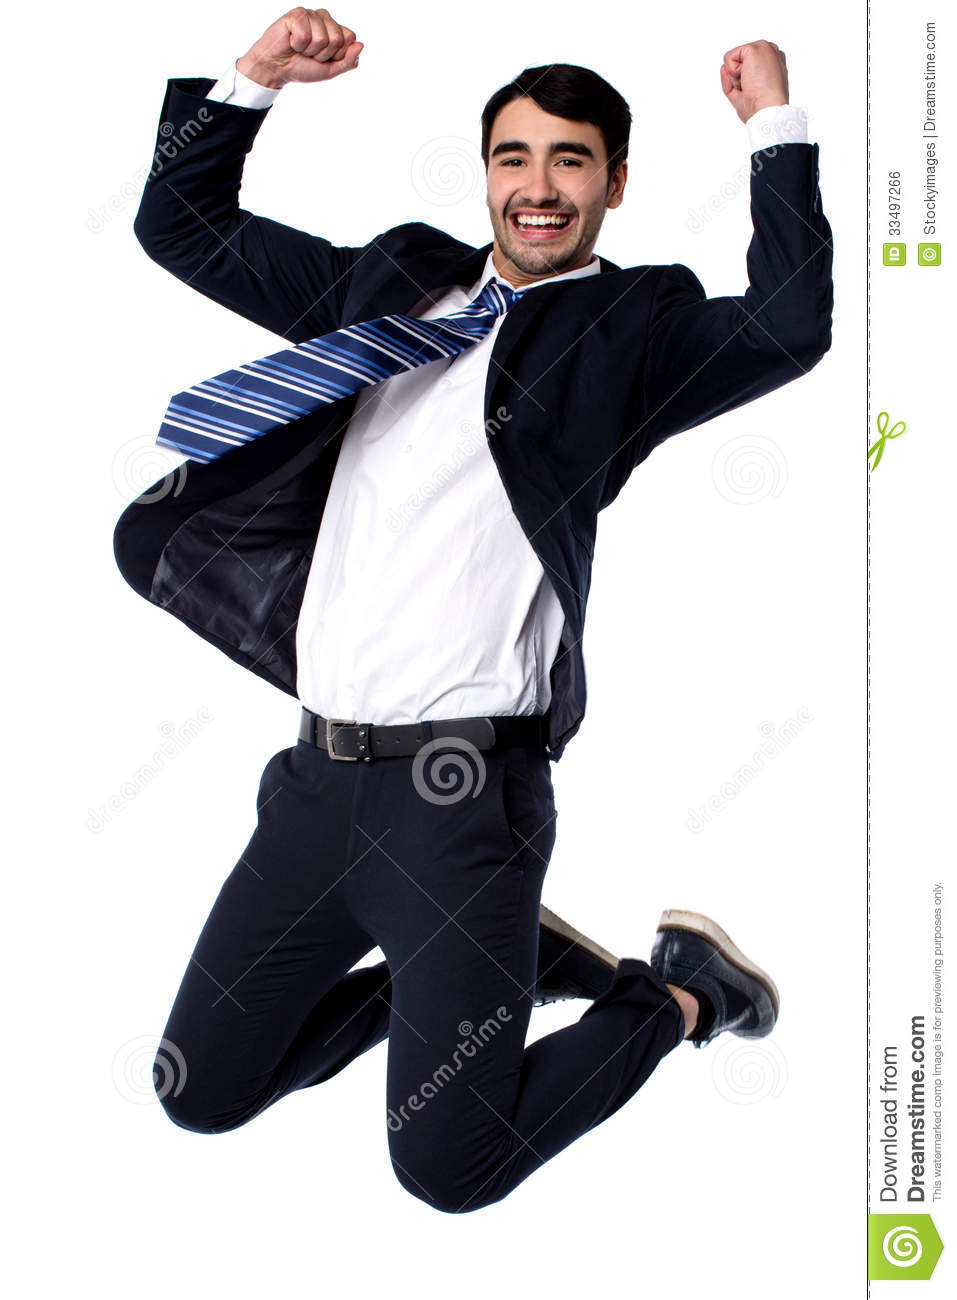 We Did It ... Yay! Royalty Free Stock Image - Image: 33497266